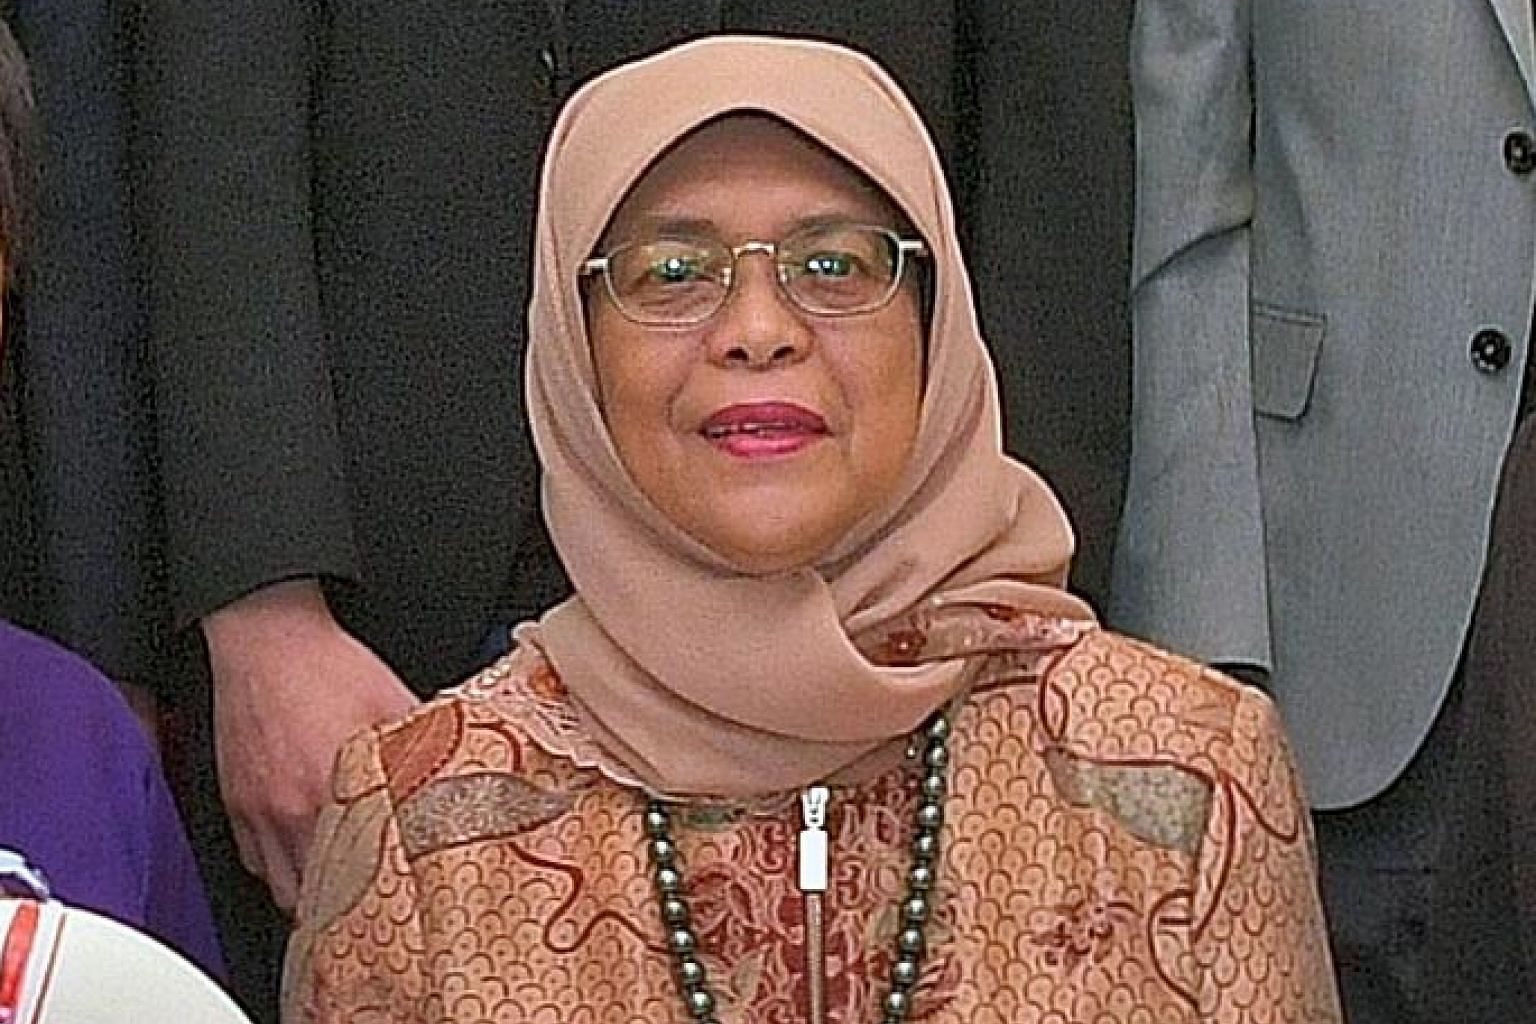 President Halimah Yacob is one of five heads of state from different regions who made this call in a Financial Times op-ed.